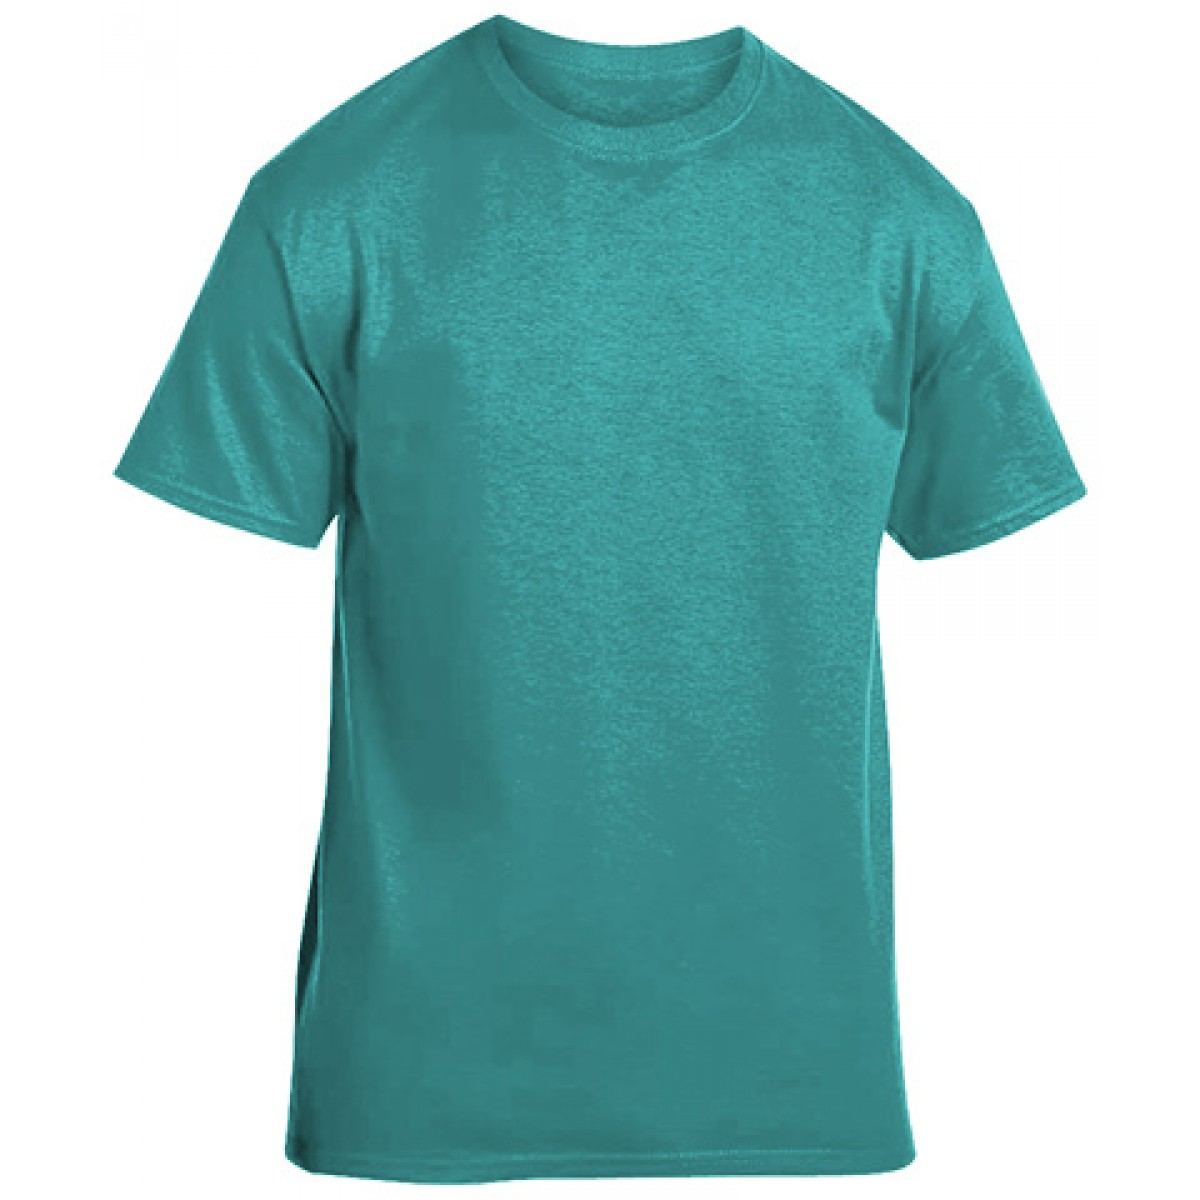 Soft 100% Cotton T-Shirt-Jade-2XL